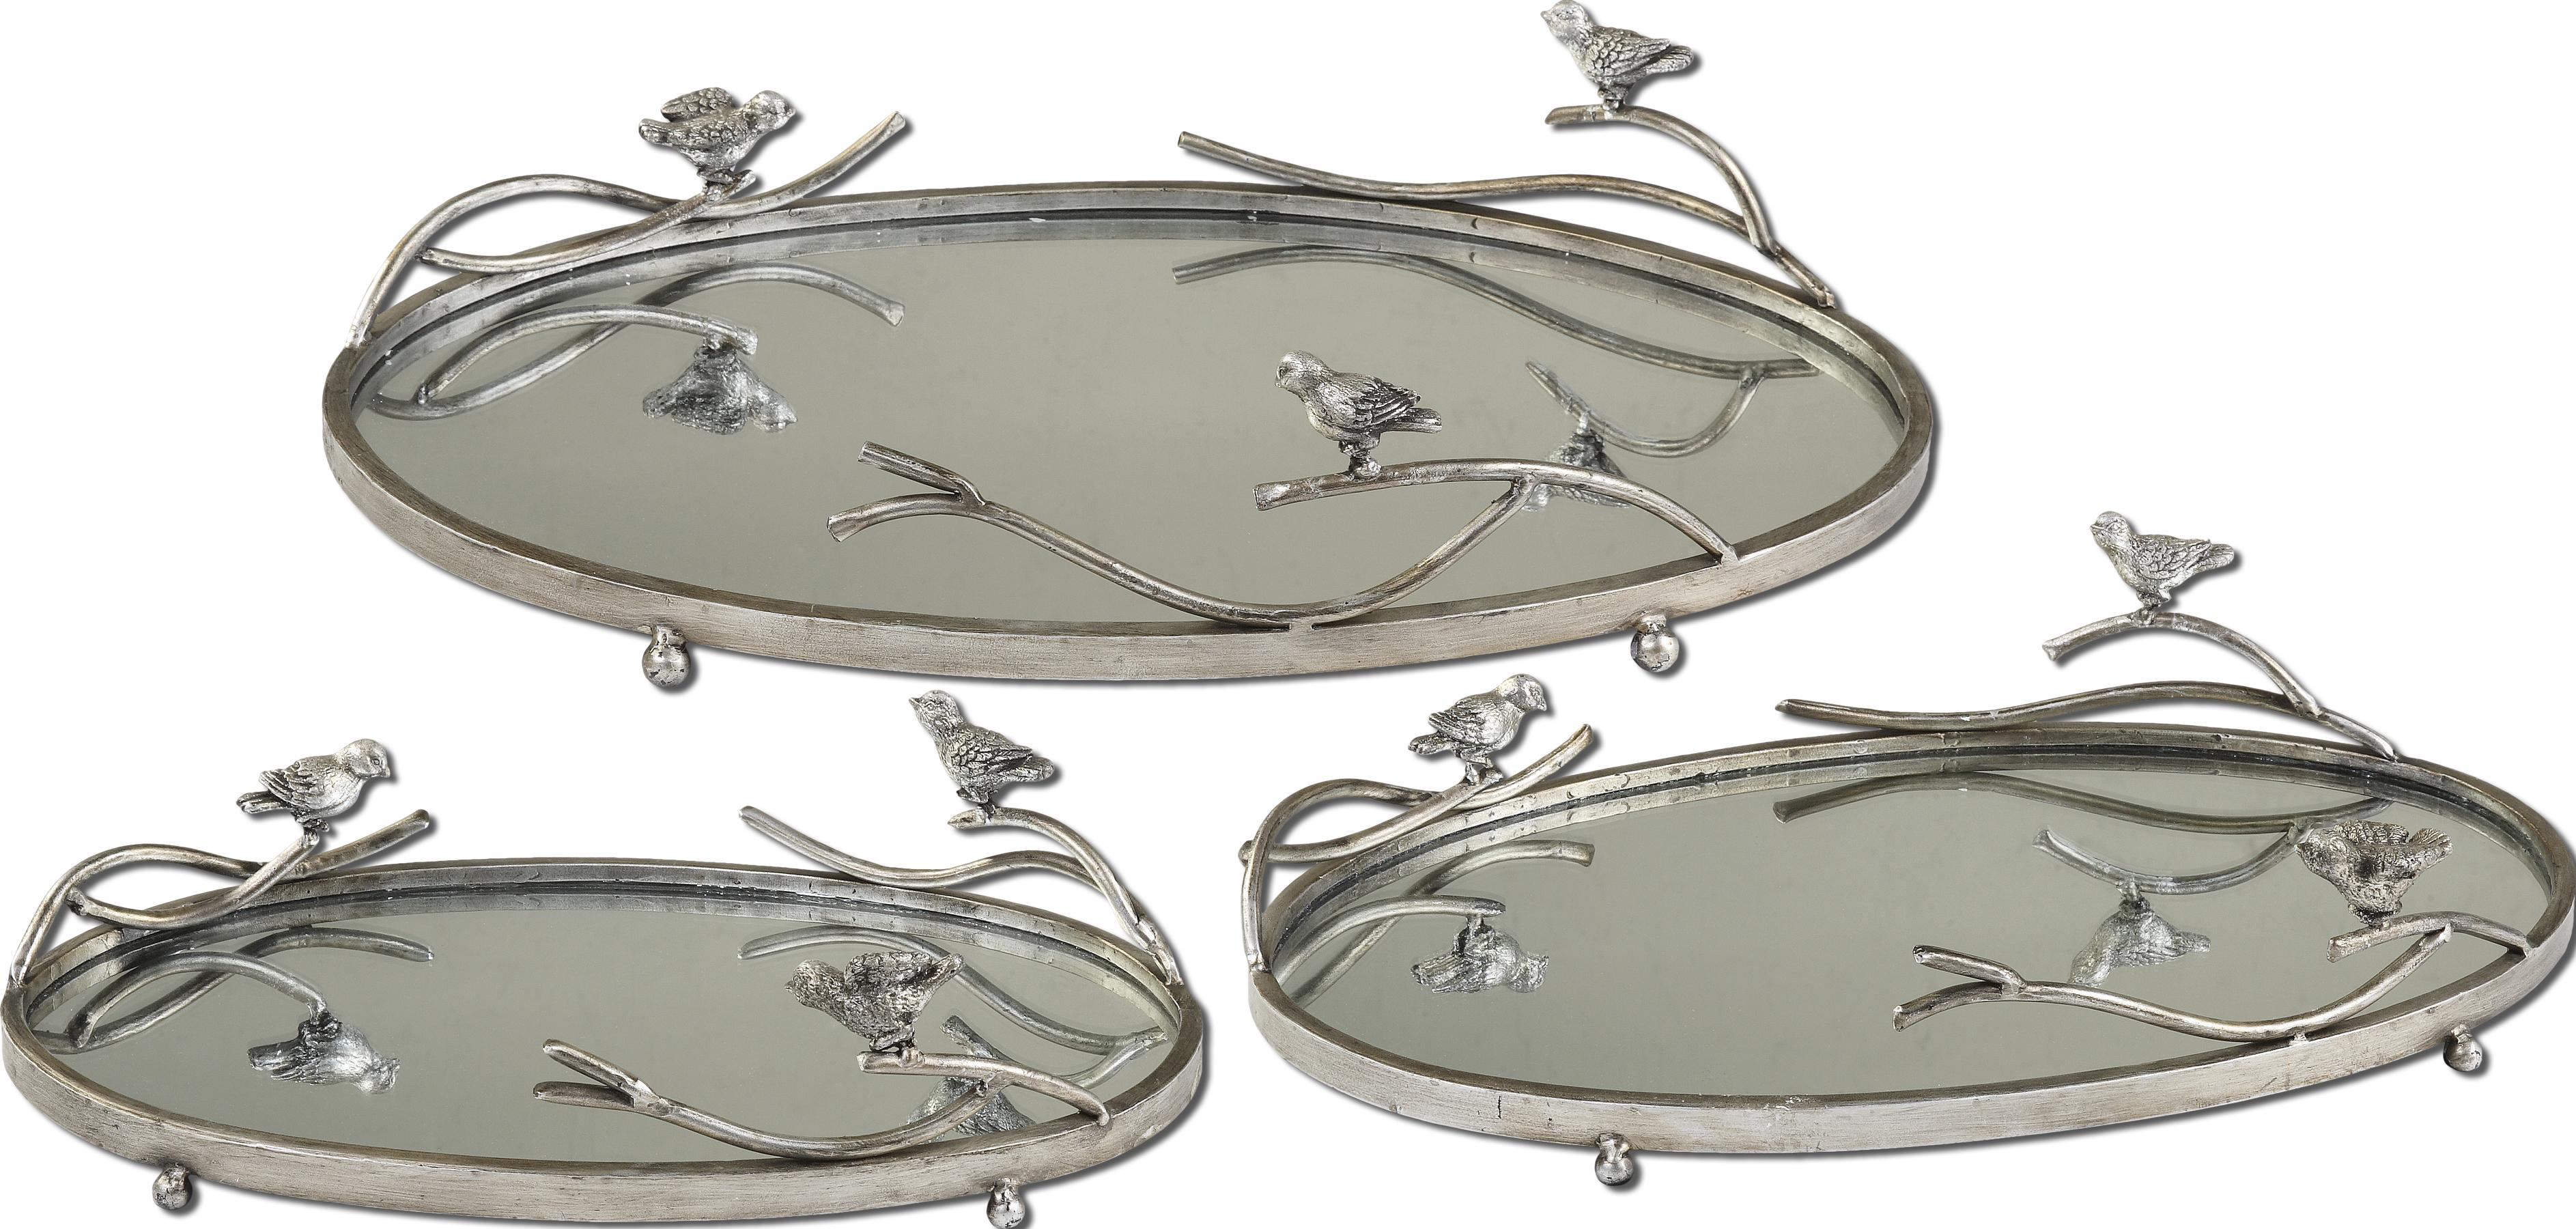 Uttermost Accessories Birds On A Limb Trays Set of 3 - Item Number: 19710